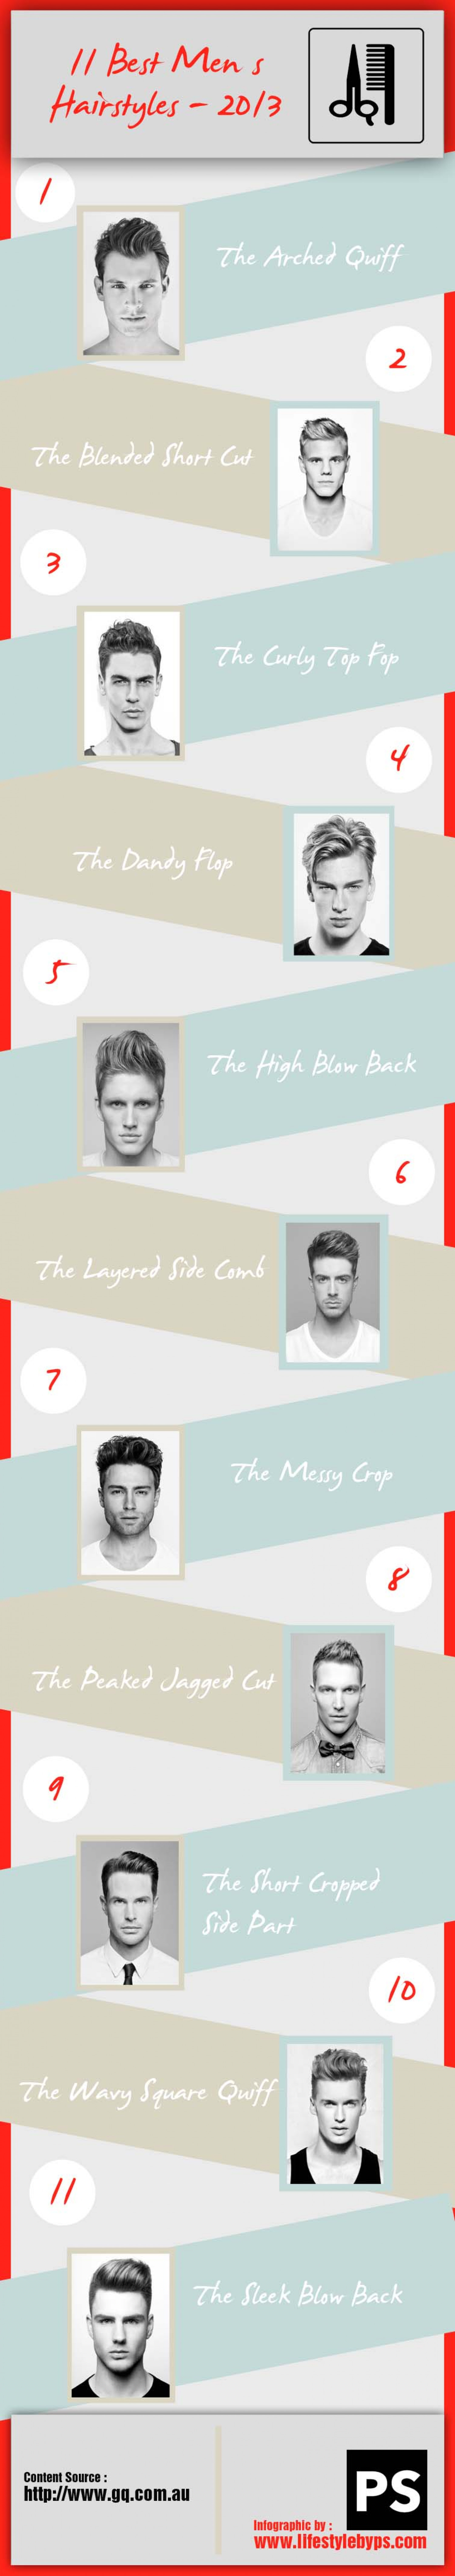 11 Best Men's Hairstyles 2013 Infographic